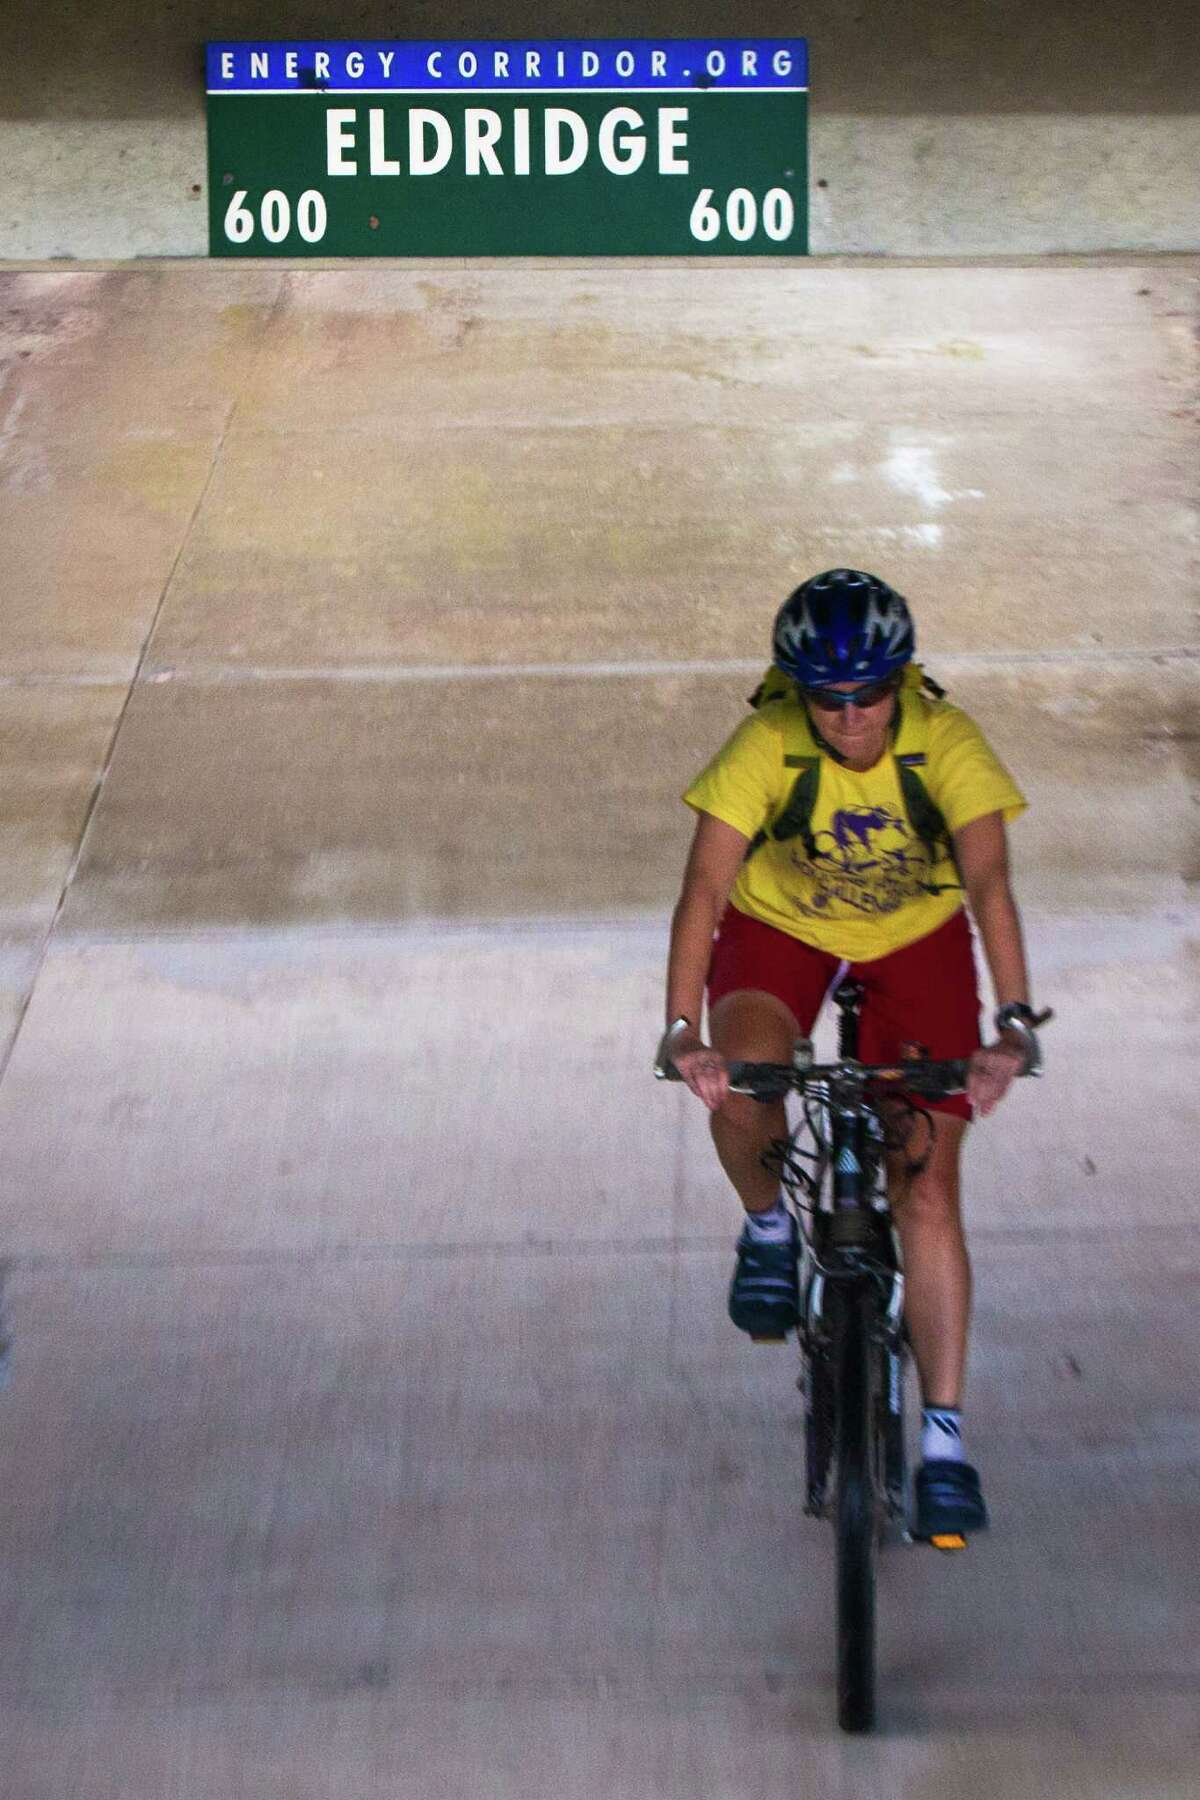 A cyclist speeds on a bike trail that passes under Eldridge Parkway on The Energy Corridor District in Houston. The area has more than 50 miles of scenic trails for bicycles and pedestrians. Monday, Sept. 22, 2014, in Houston. ( Marie D. De Jesus / Houston Chronicle )